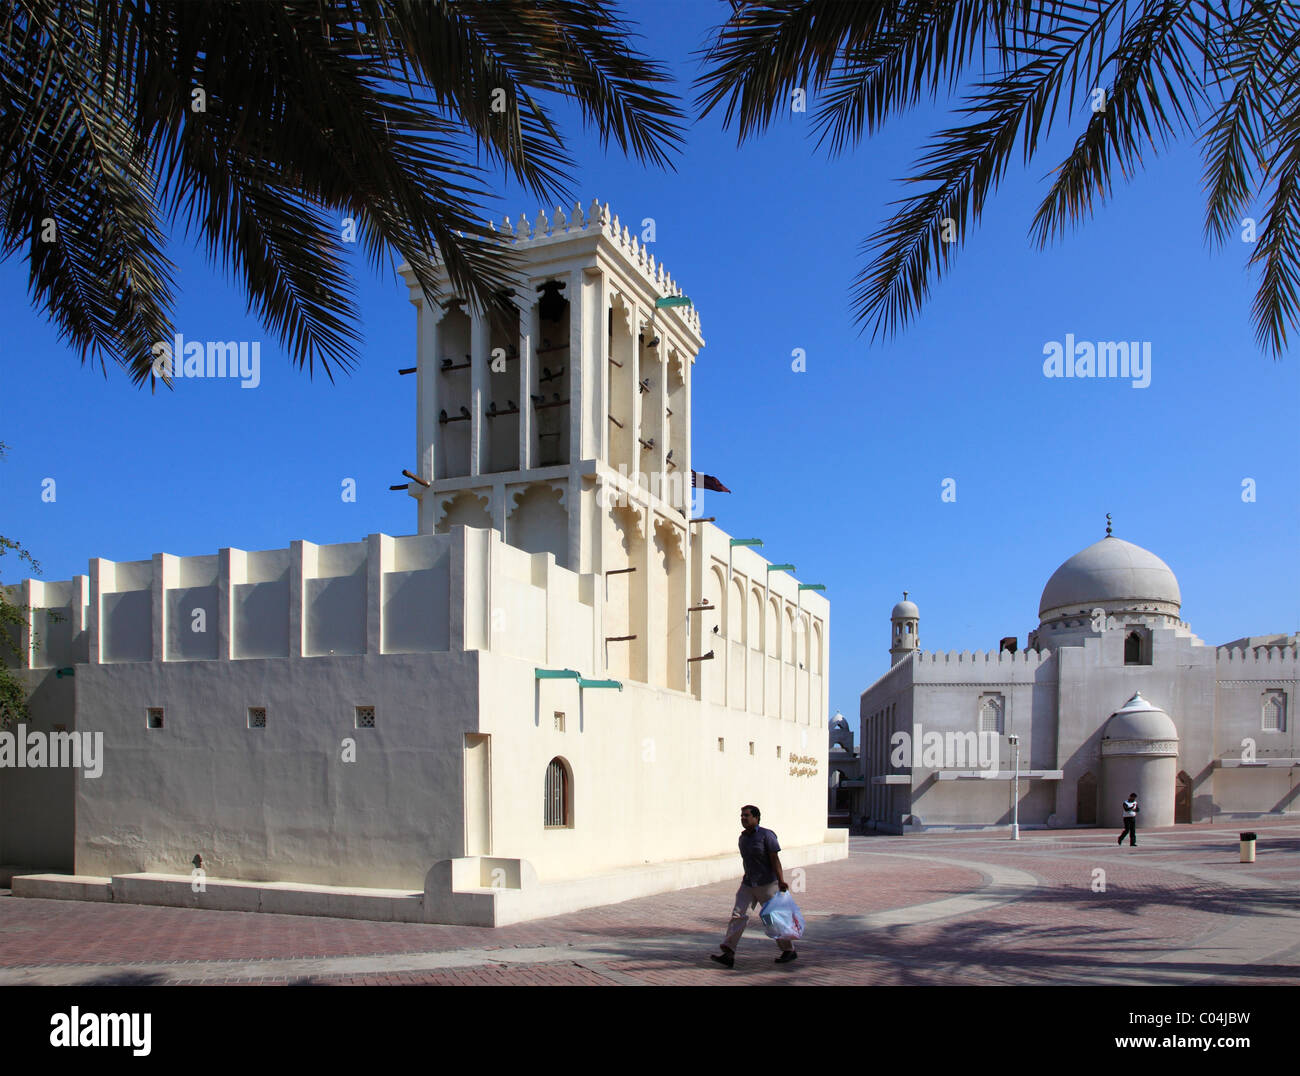 Qatar doha heritage house traditional architecture for Architecture qatar